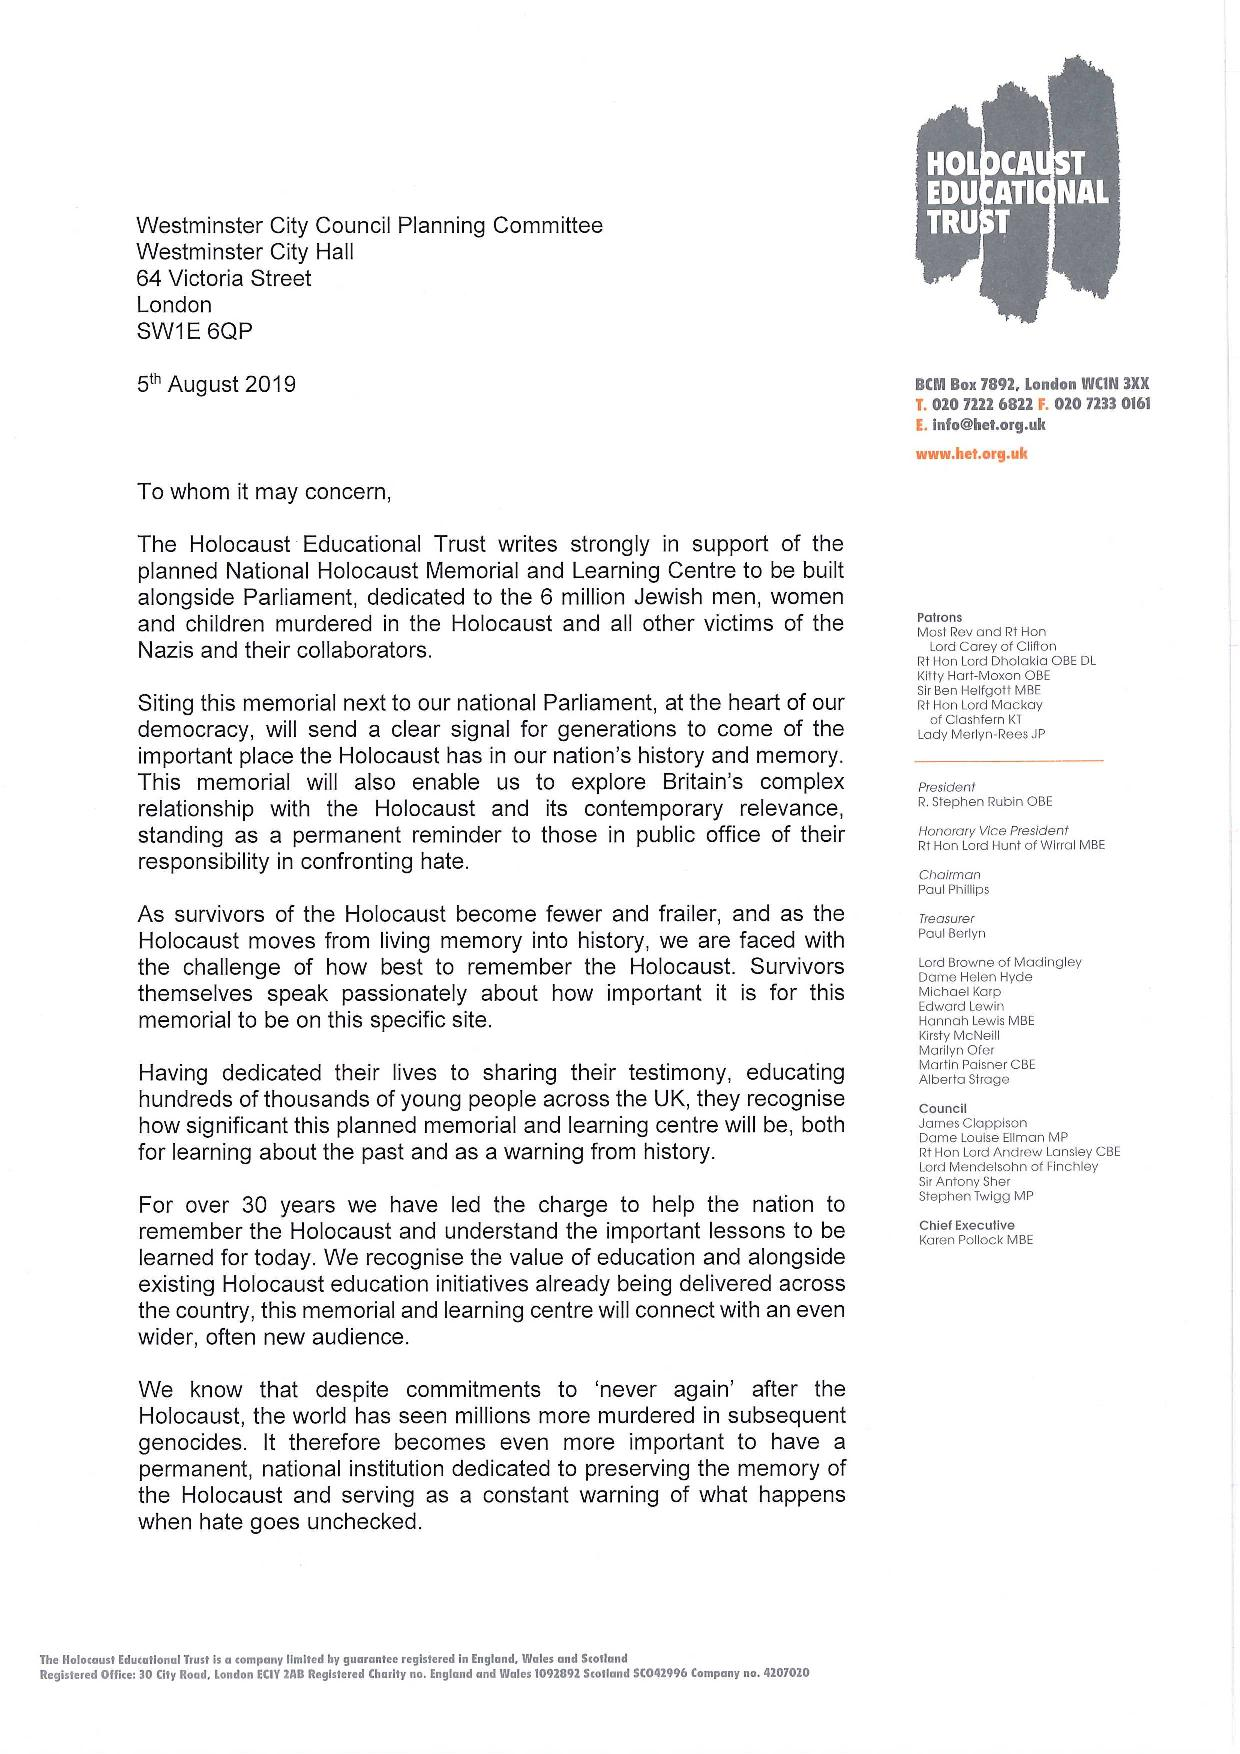 Westminster Council HET Letter of Support Page 1